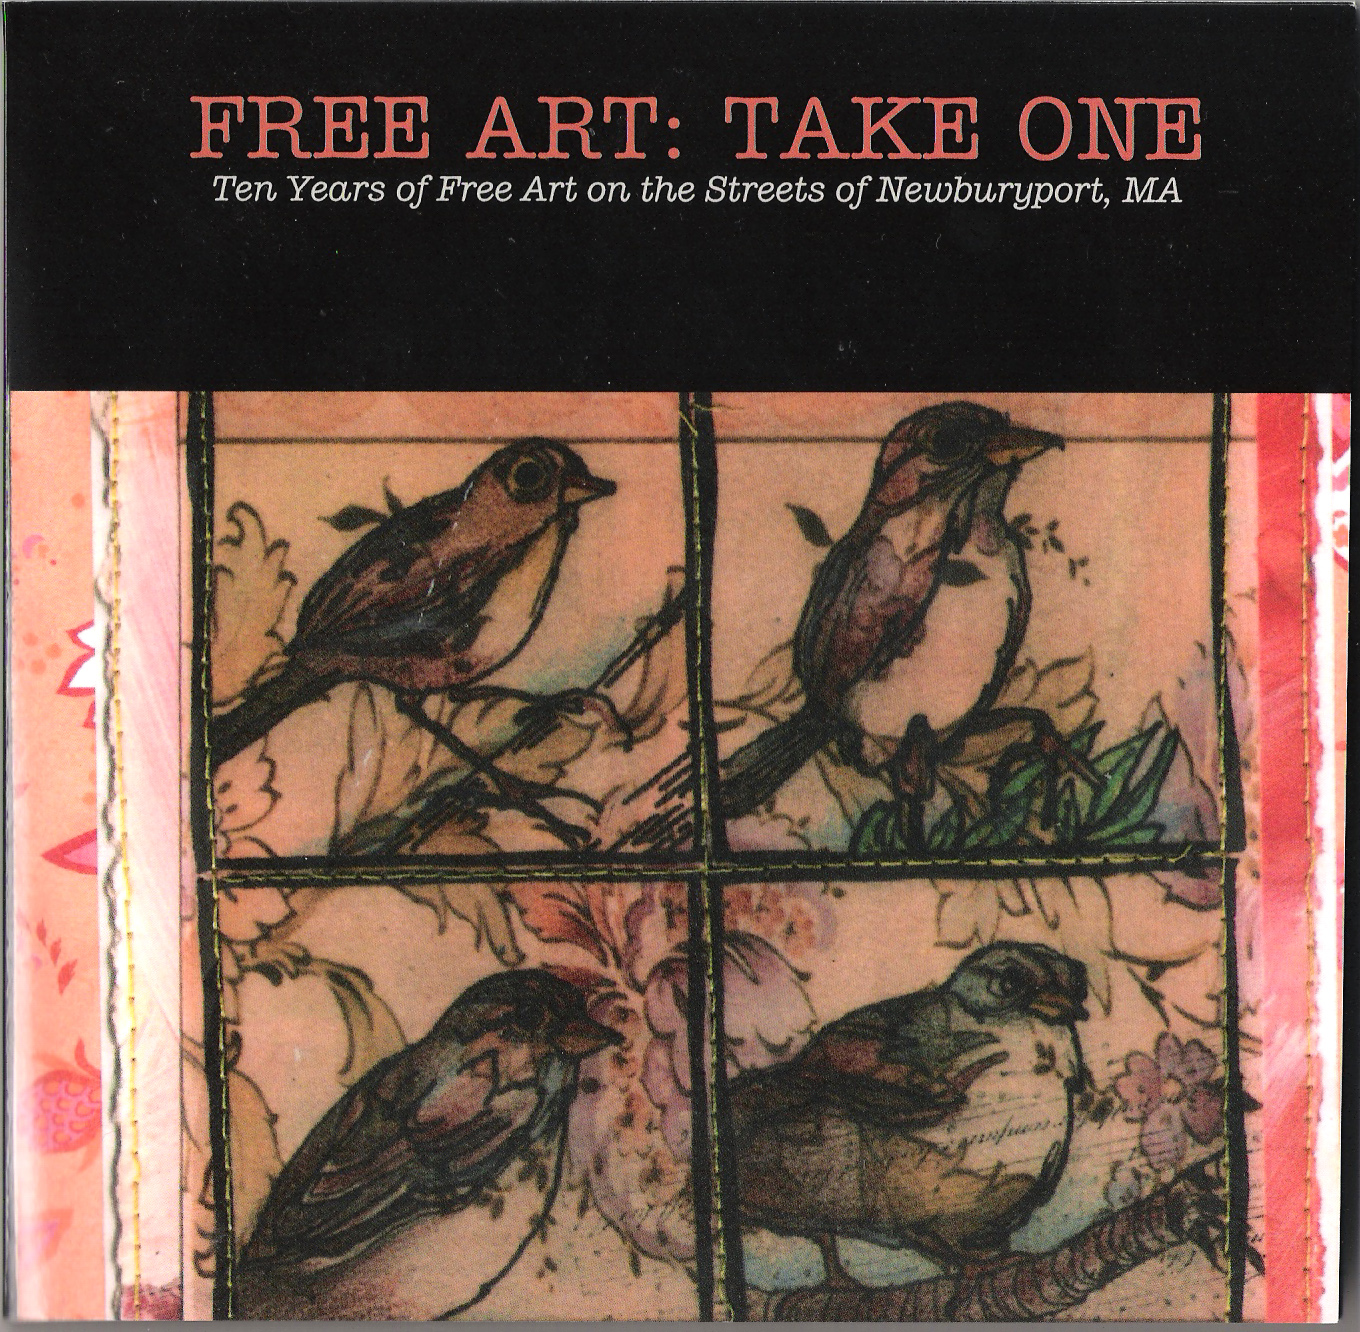 Free Art Take One Burst Bloom Records